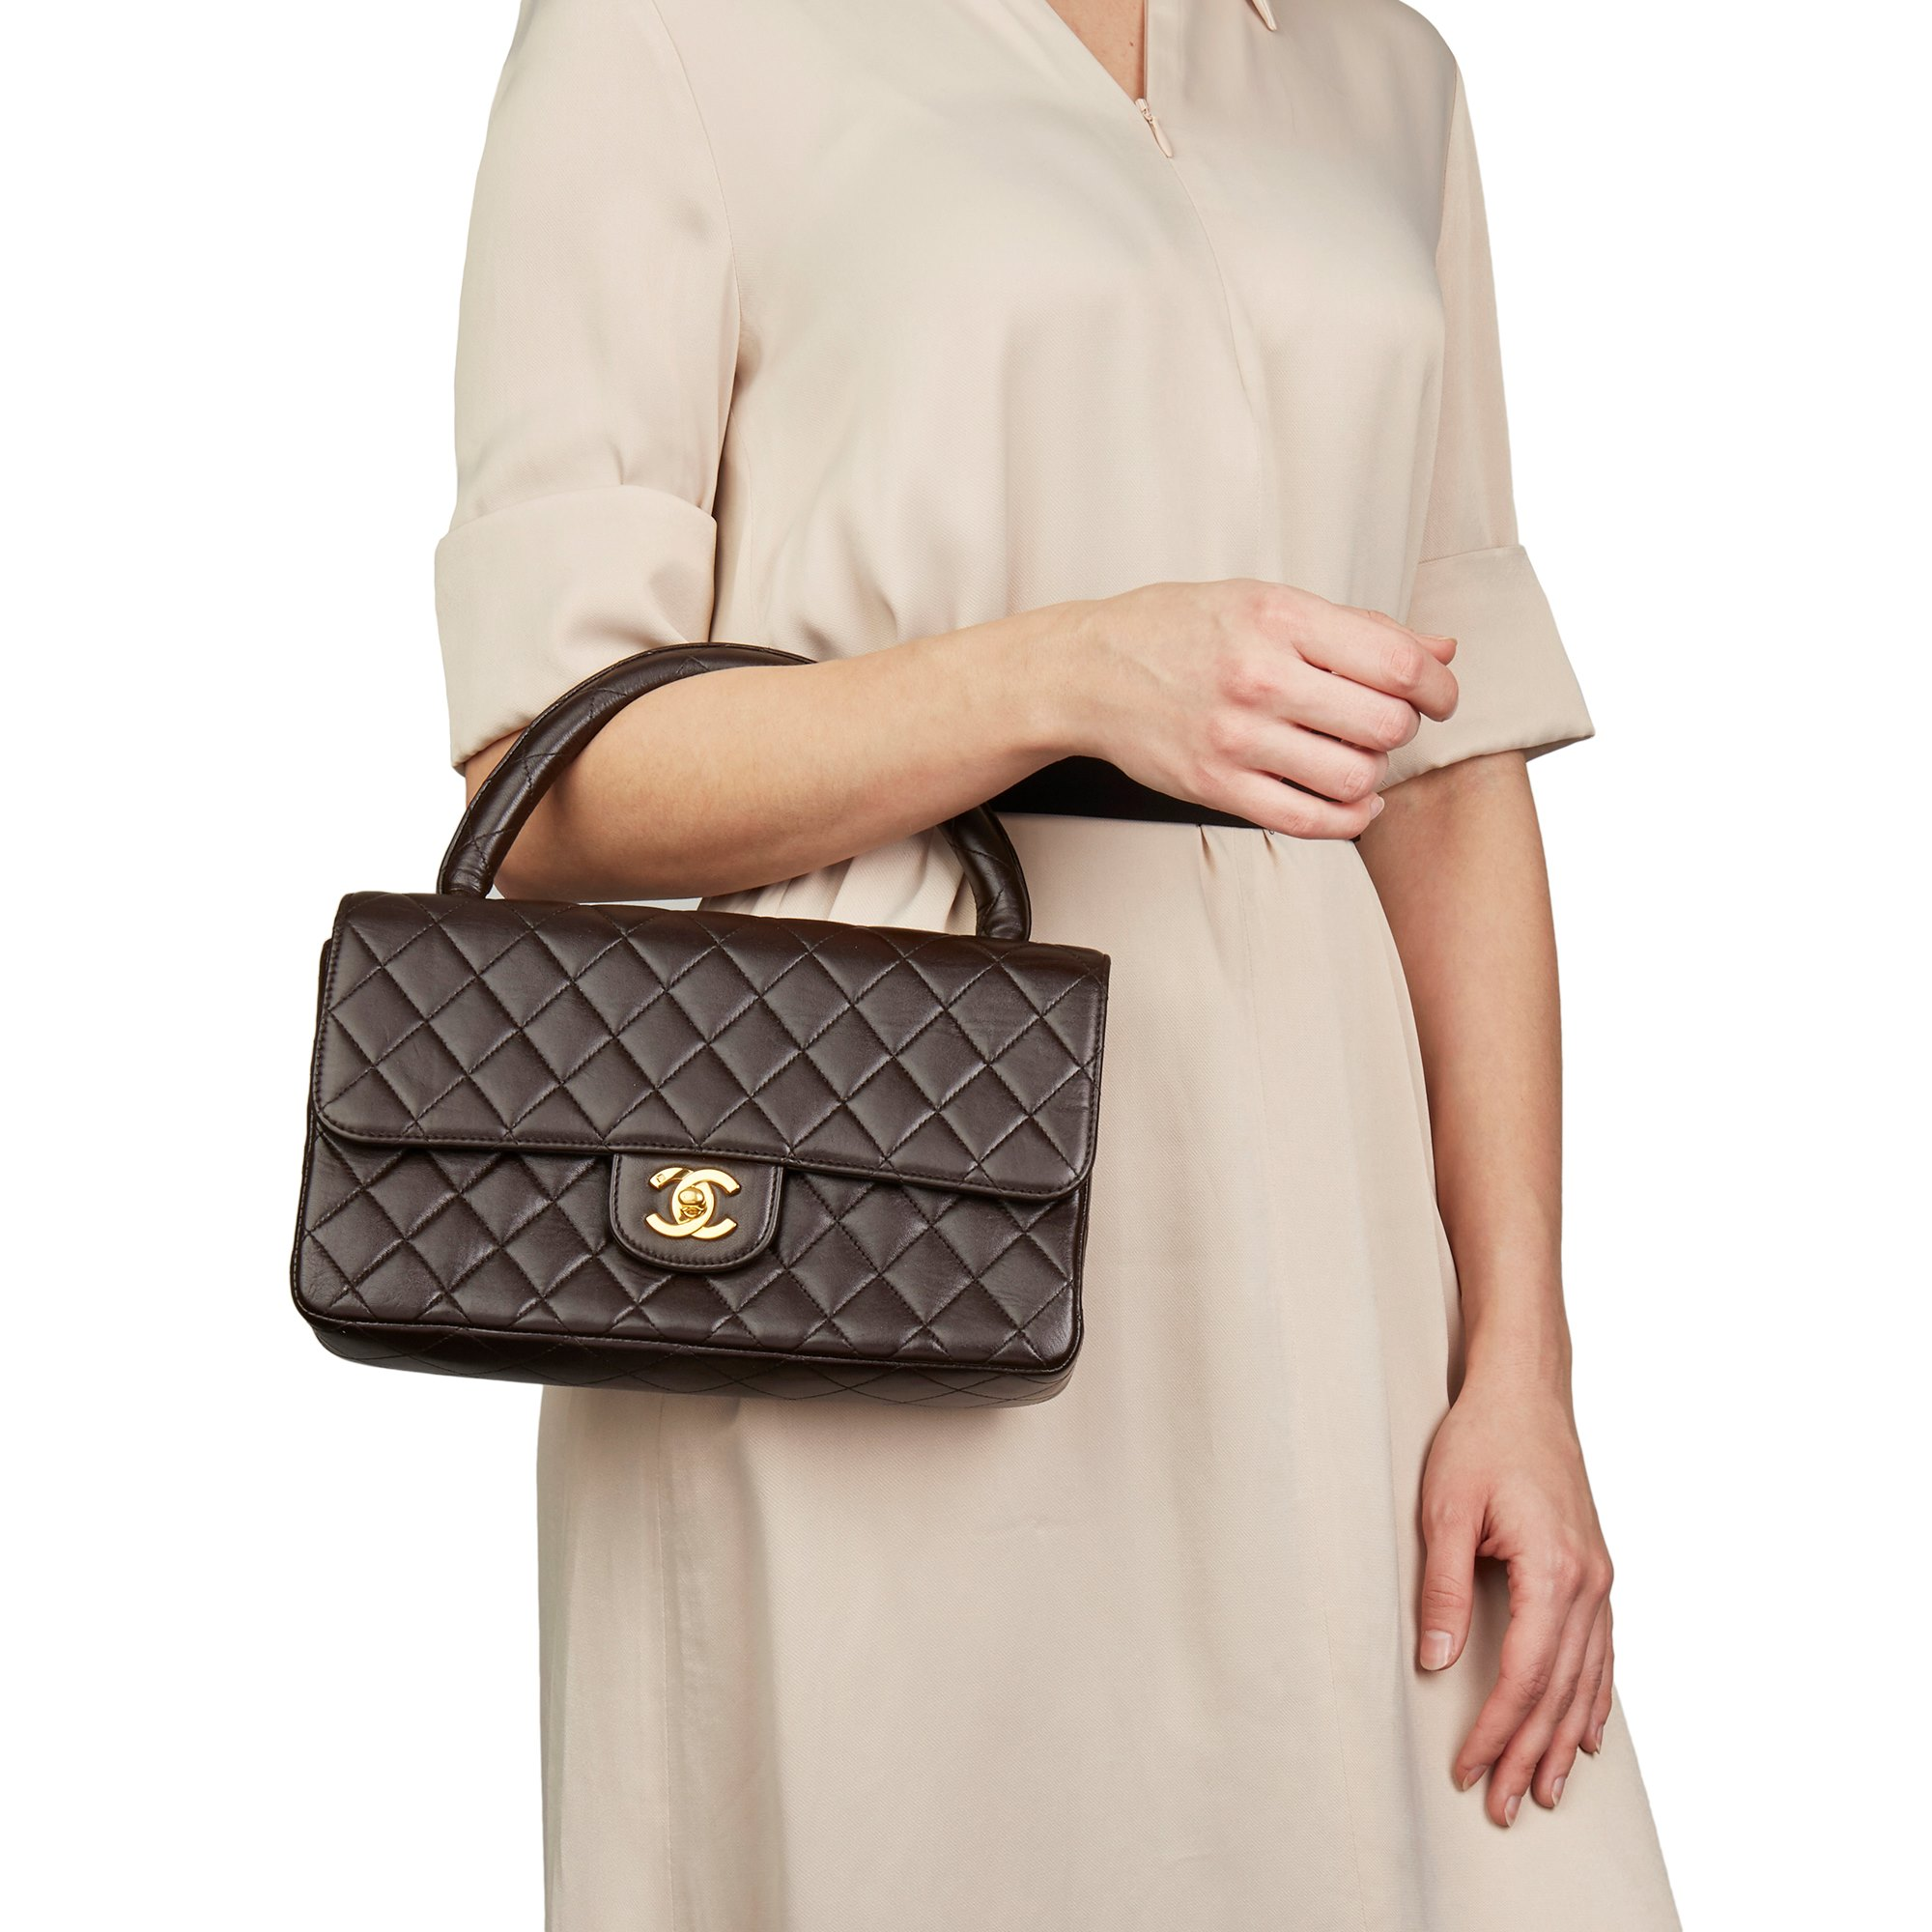 Chanel Chocolate Brown Quilted Lambskin Vintage Medium Classic Kelly Flap Bag